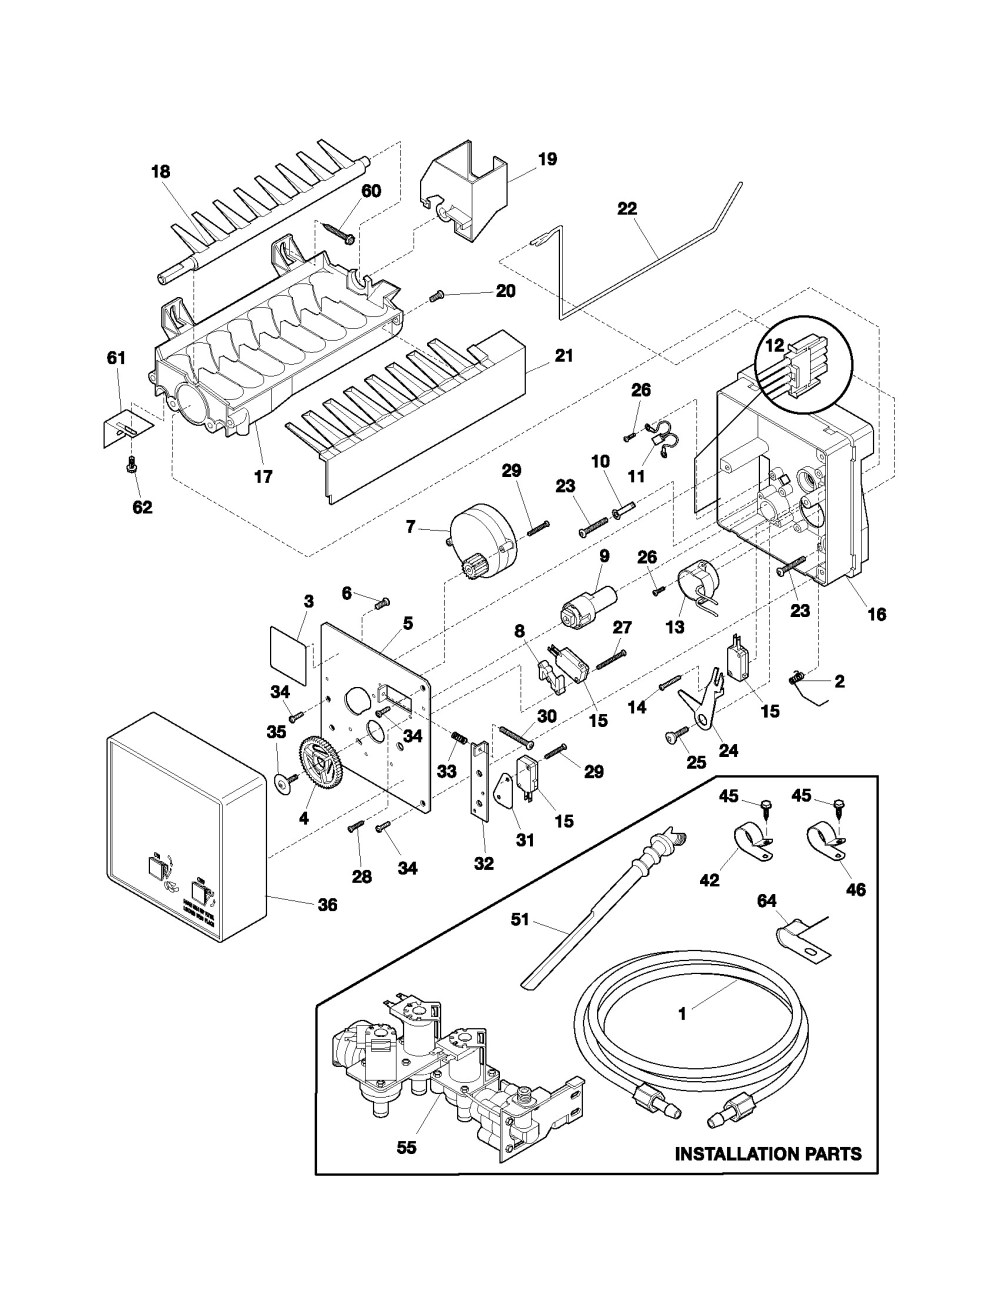 medium resolution of  frigidaire ice maker parts diagram charming maytag refrigerator ice on ice maker capacitor ice with simple refrigerator wiring